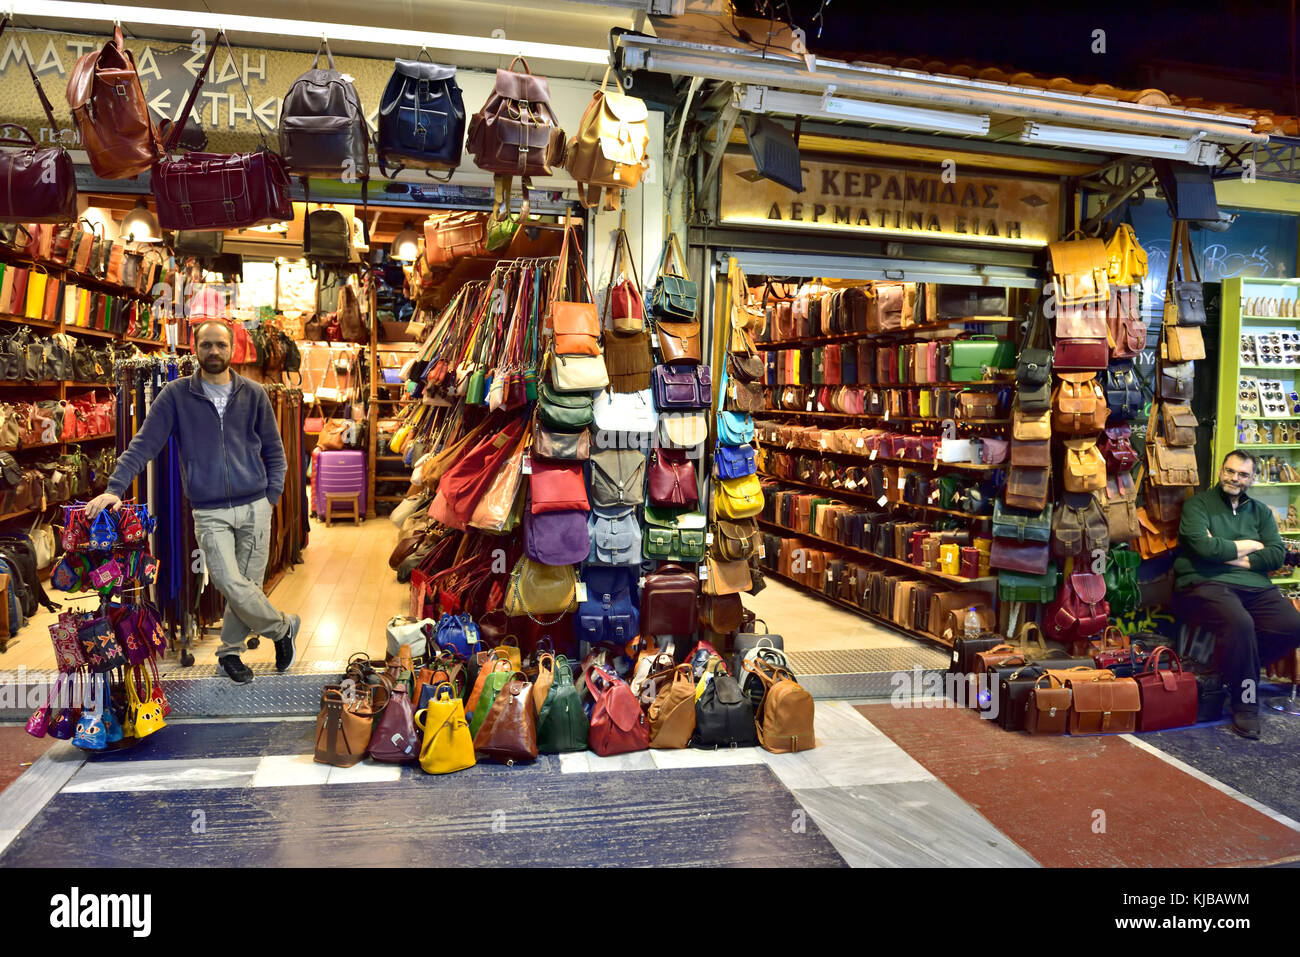 Leather goods store, handbags, bags, in shopping area off Ermou Street Monastiriaki area of central Athens, Greece - Stock Image